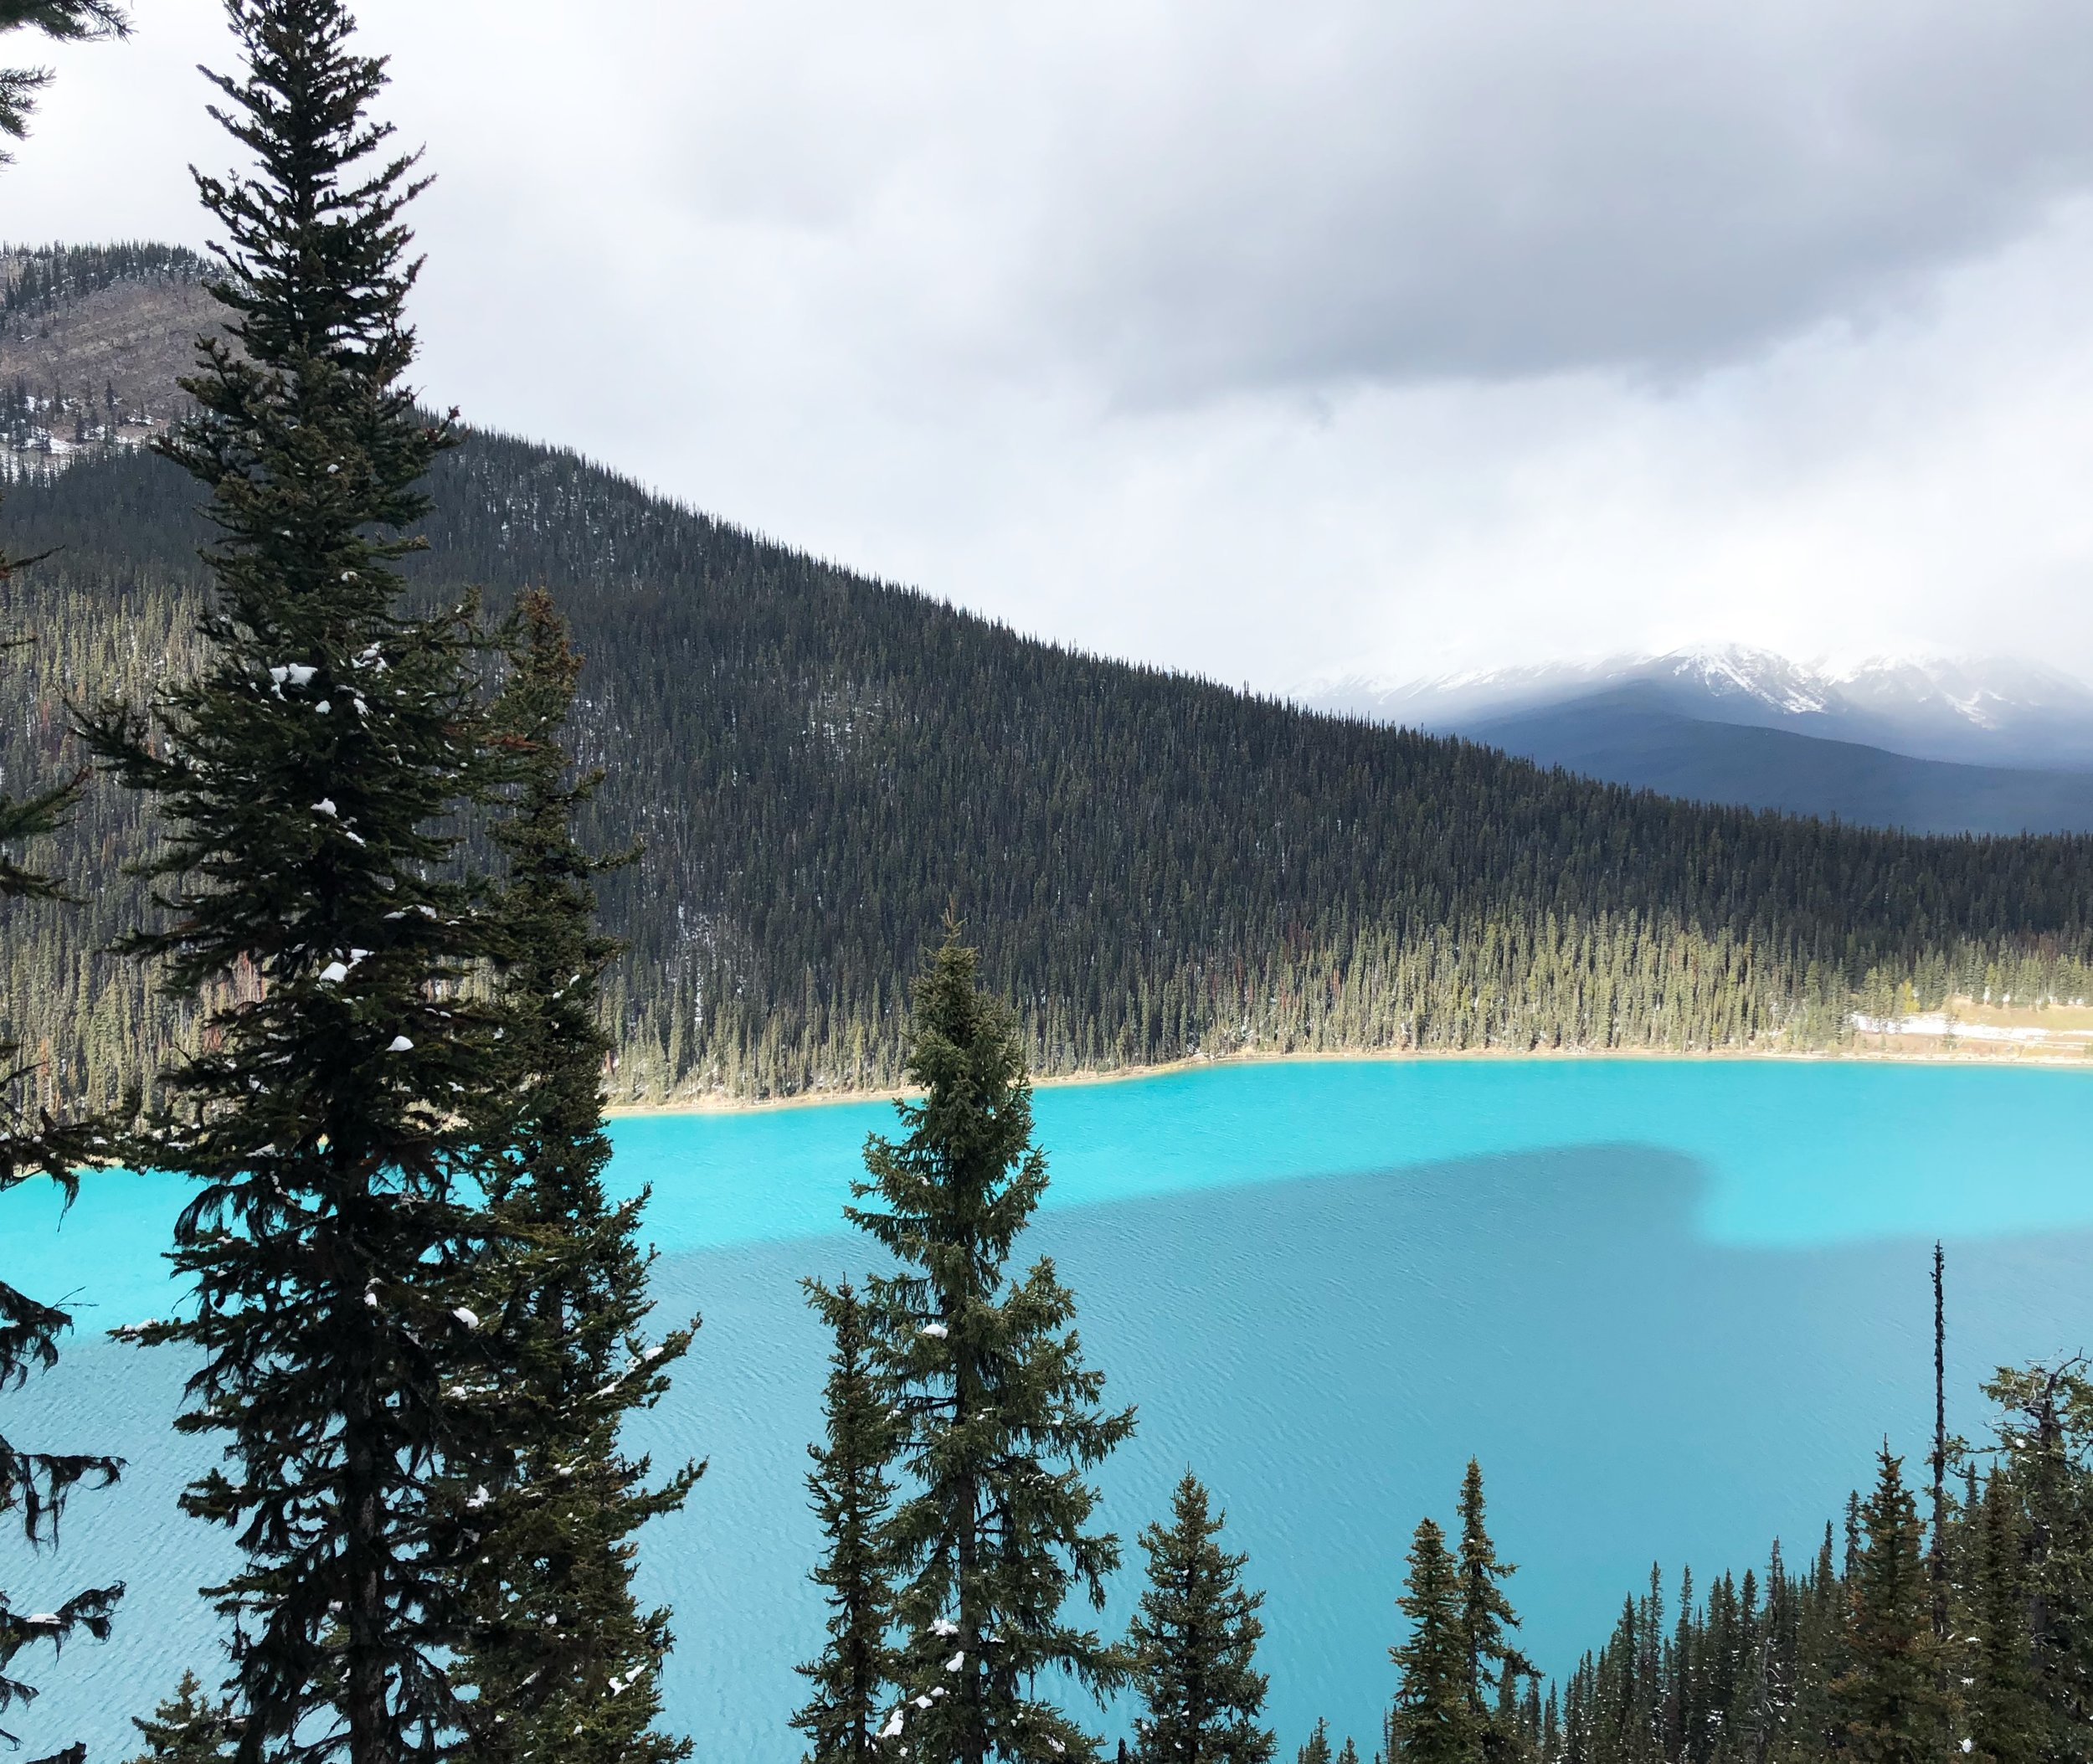 LAKE LOUISE ACTUALLY LOOKS LIKE THIS LOL WHAT IS THE EARTH